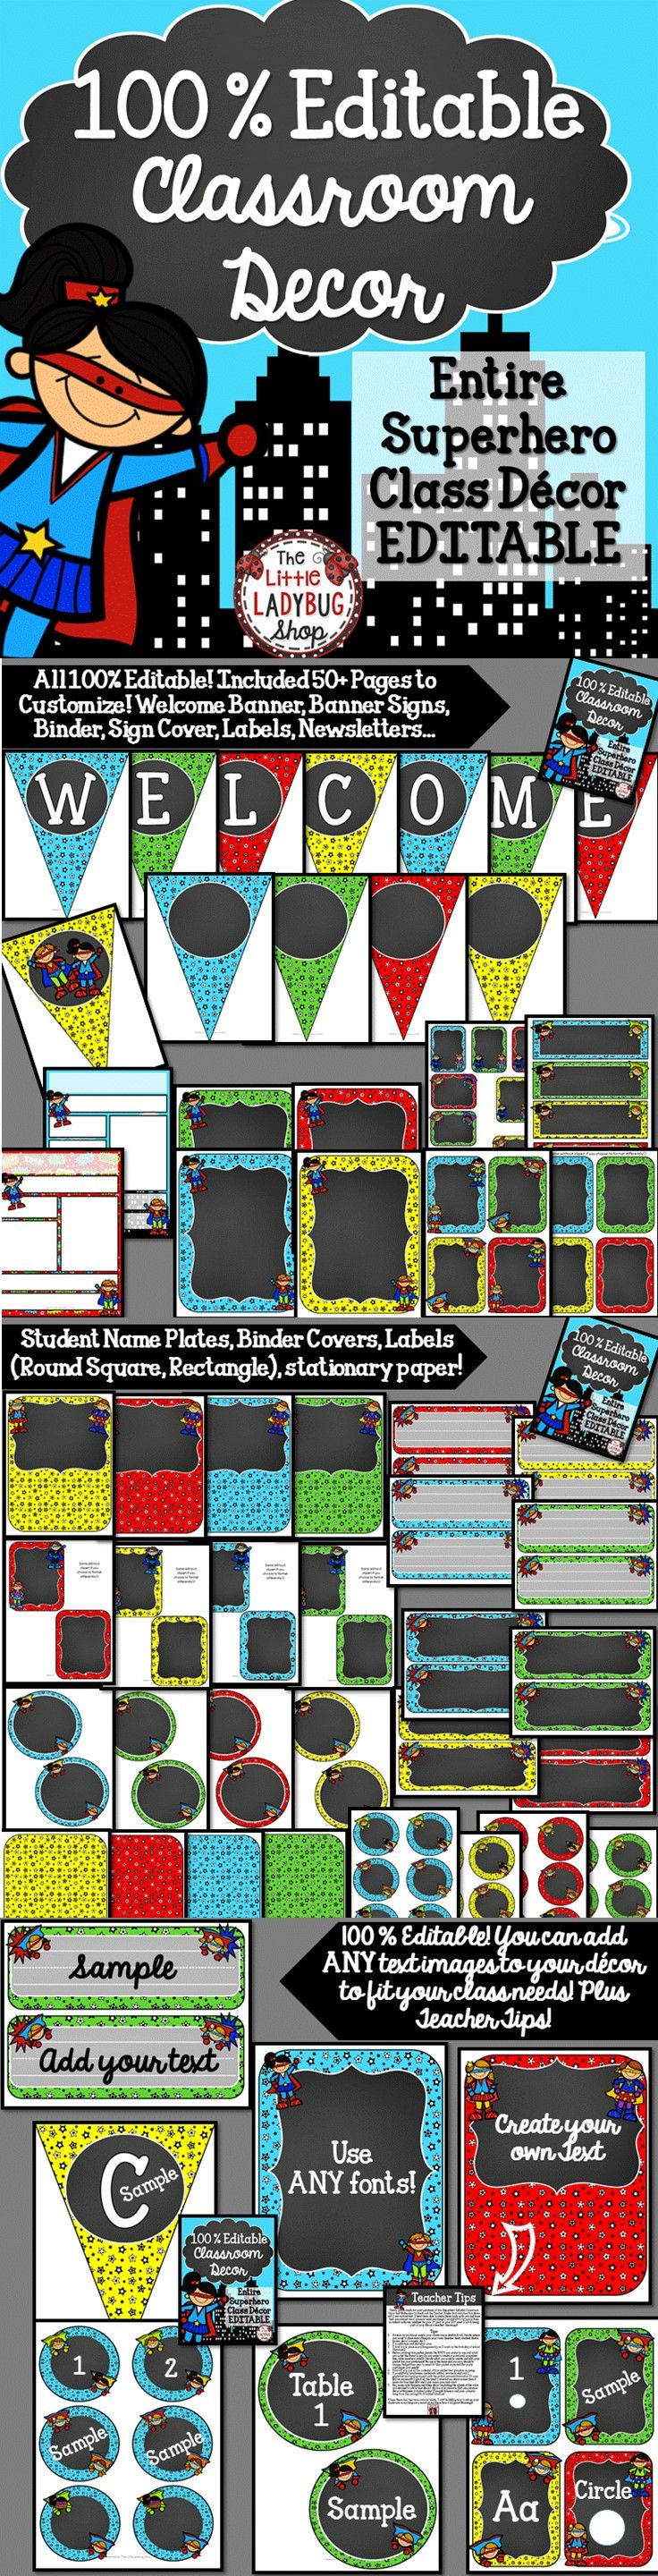 Classroom Décor: Superhero Theme {100% Editable}  Classroom Decoration / Classroom Design /Classroom Set Bundle   A complete Classroom Décor Set all Editable options to meet your classroom Needs!